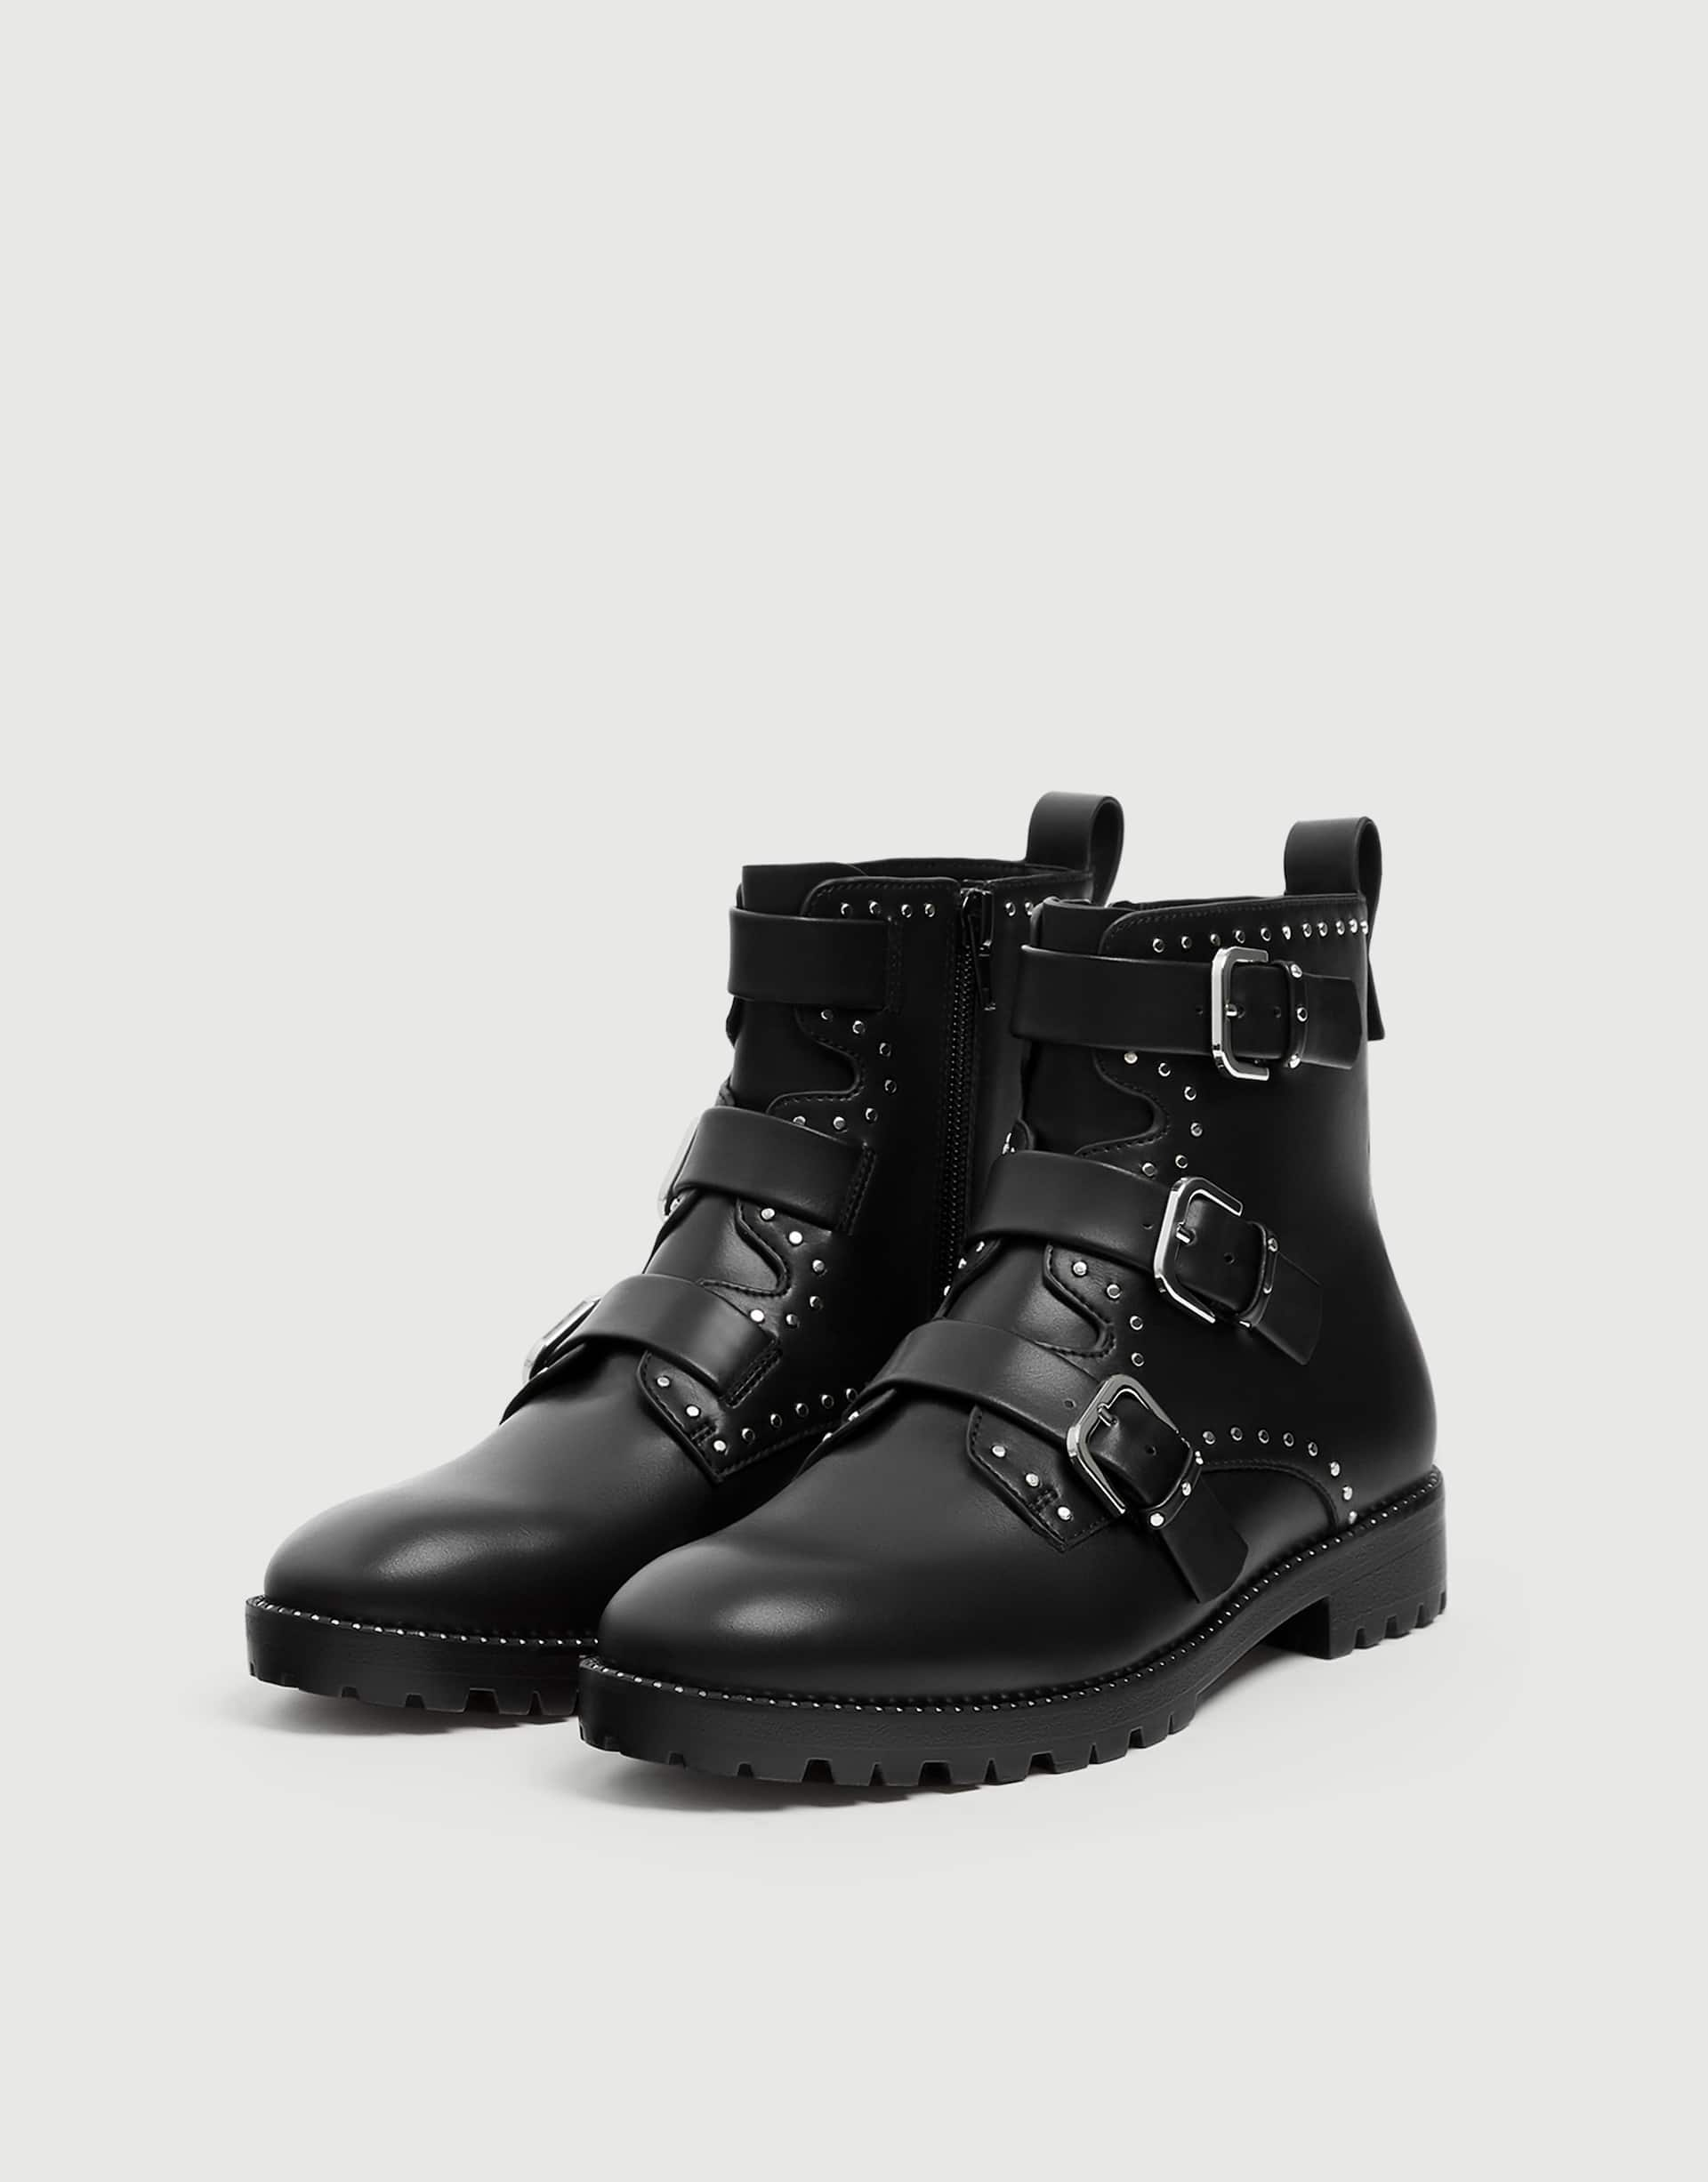 bca63c1ca49 Flat ankle boots with studs - pull&bear